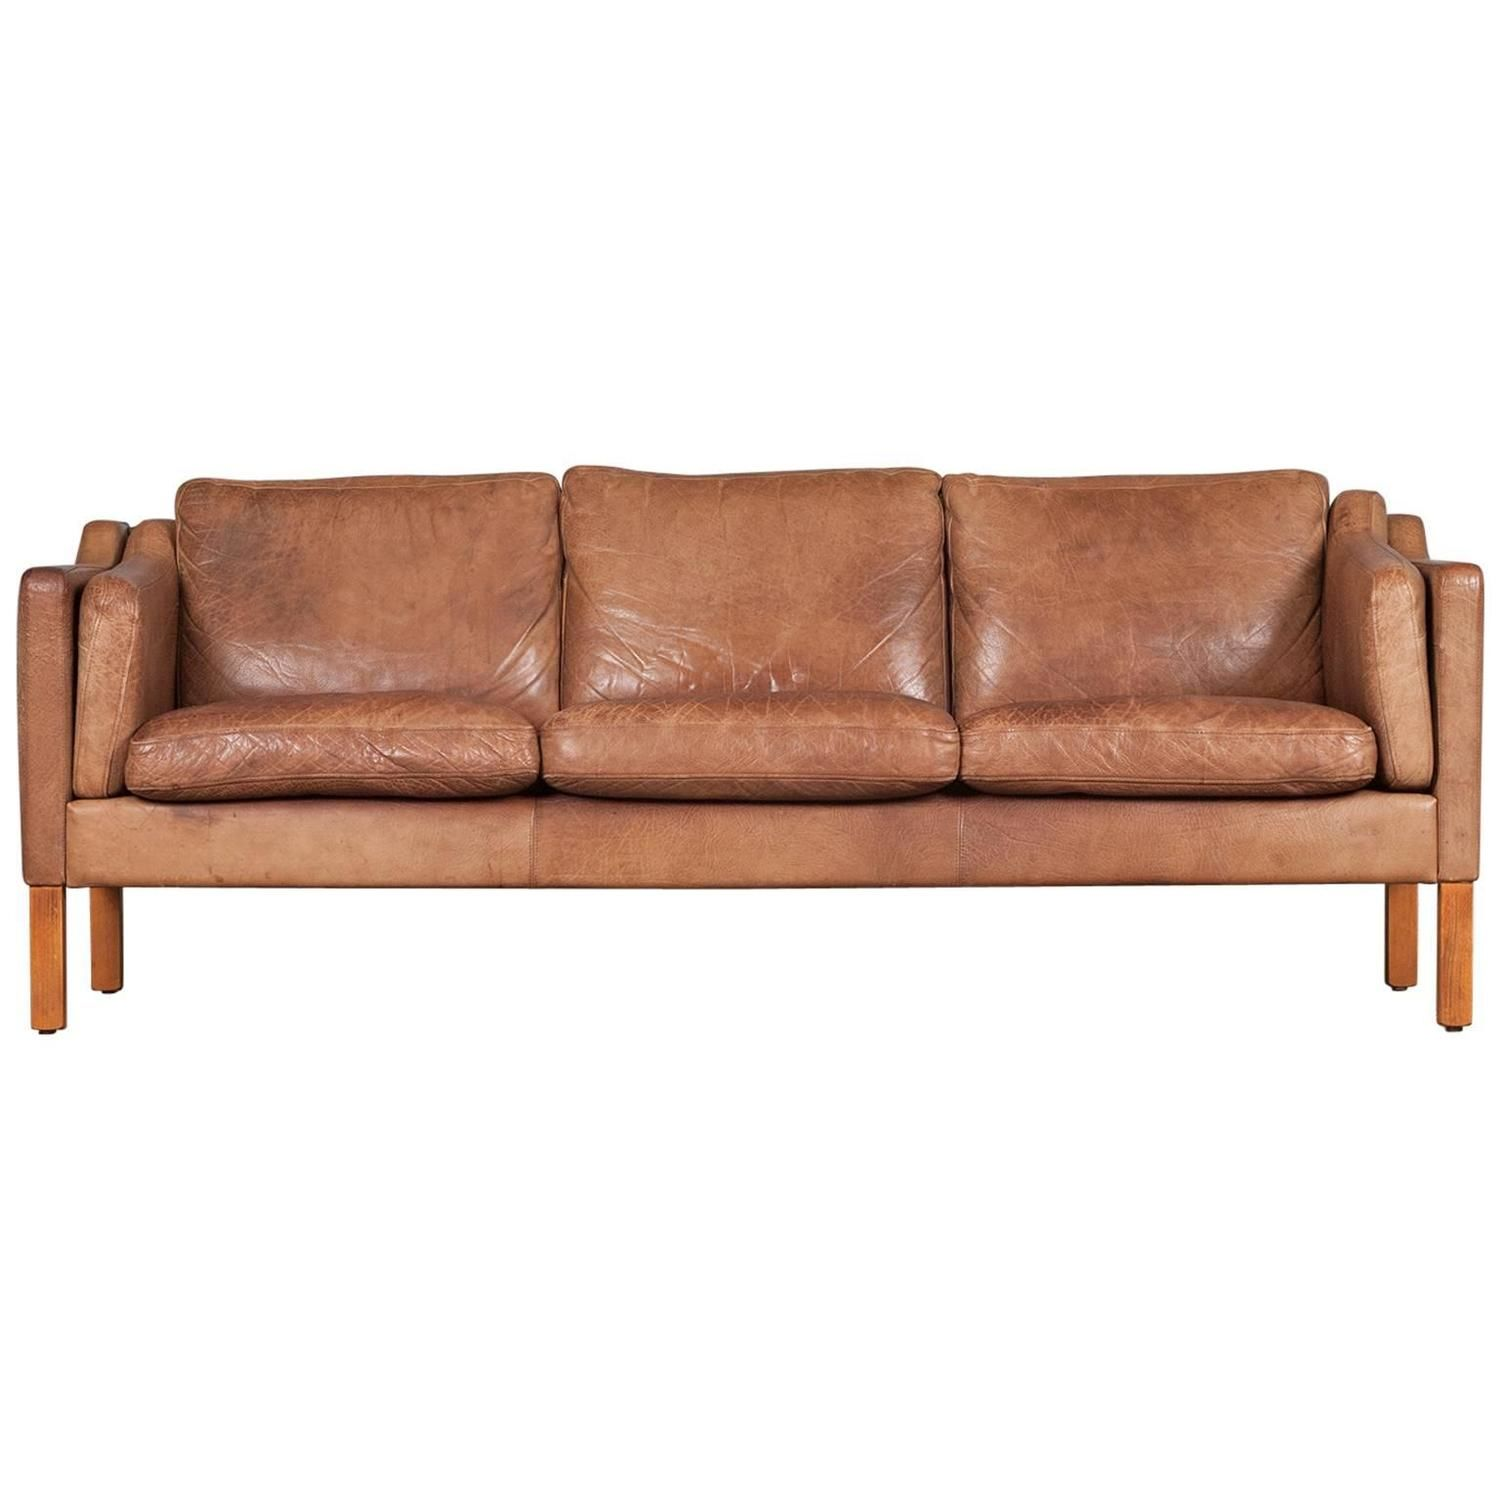 luxury hamilton leather sofa picture-Unique Hamilton Leather sofa Photograph